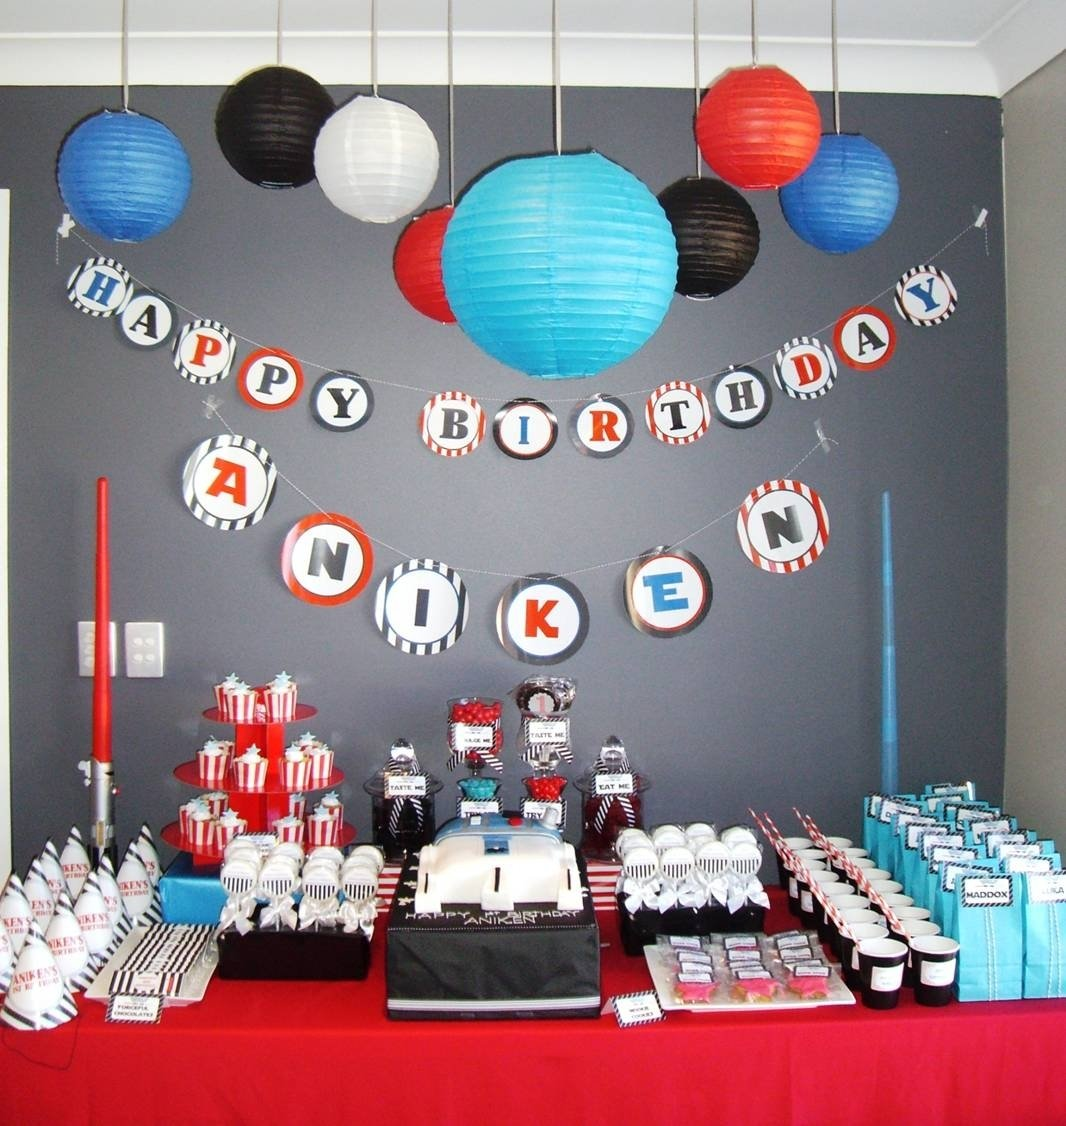 10 Unique 5 Year Old Boy Birthday Party Ideas creative birthday party ideas for boys 78 images about 5 year old 2 2021